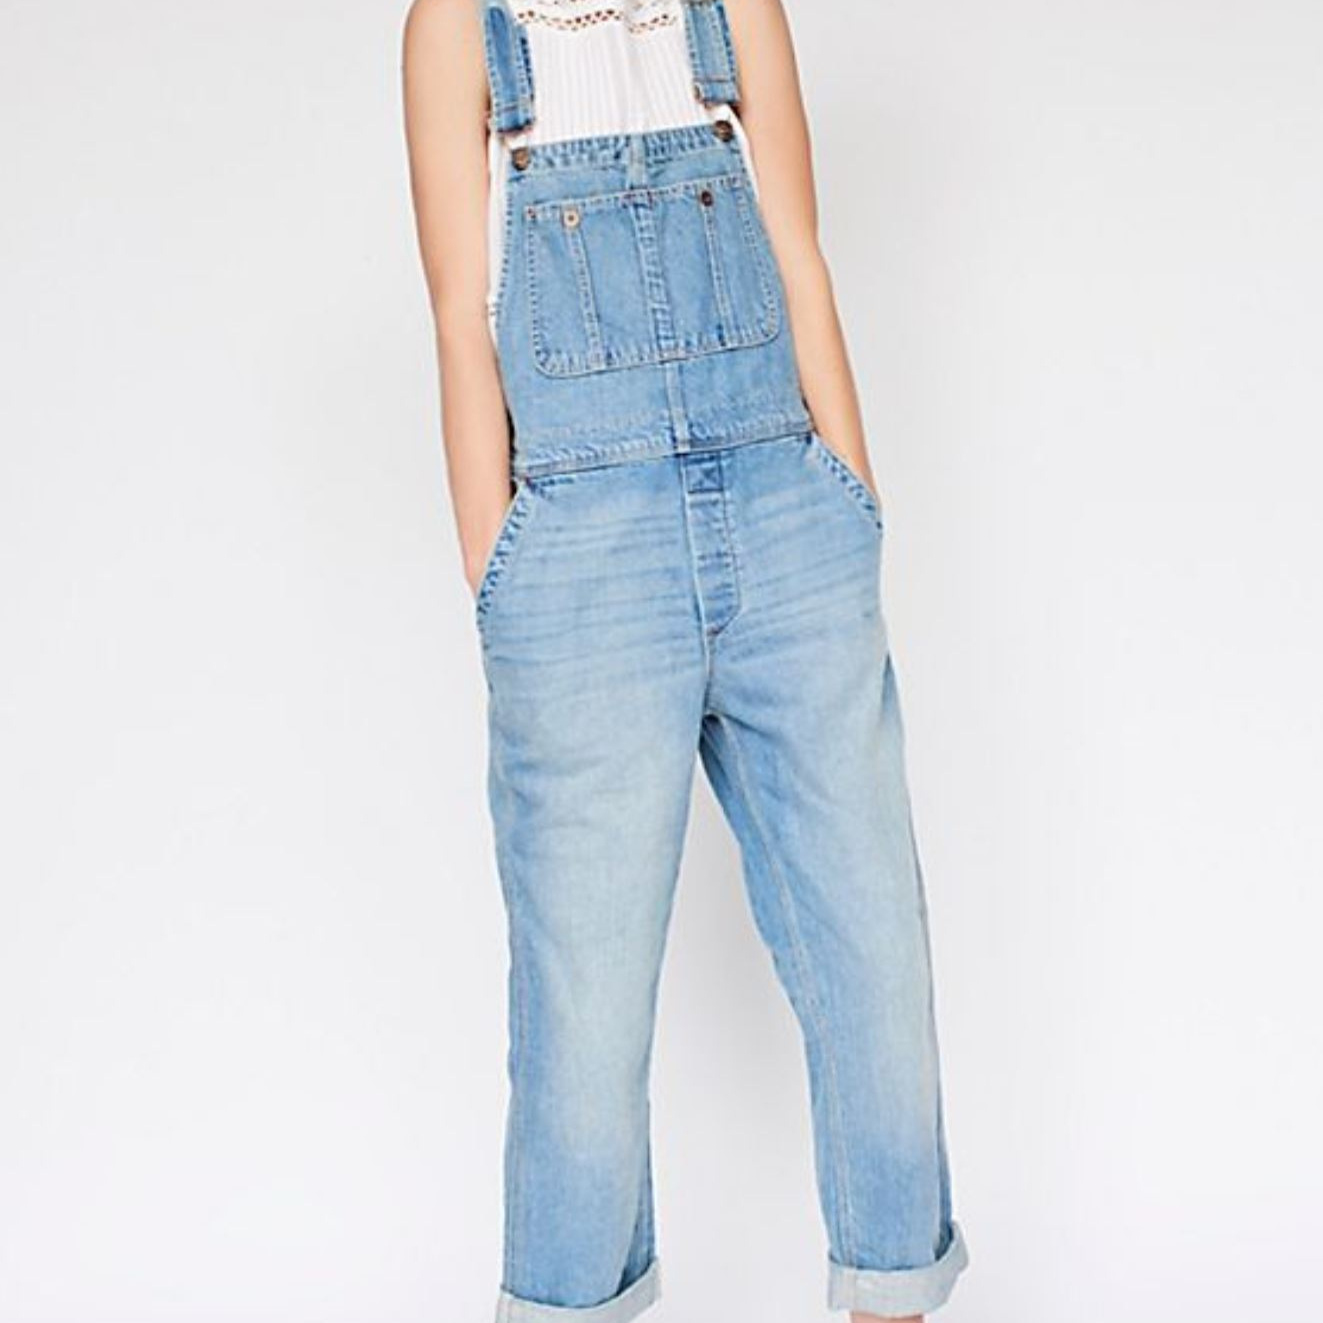 how-to-style-overalls-2